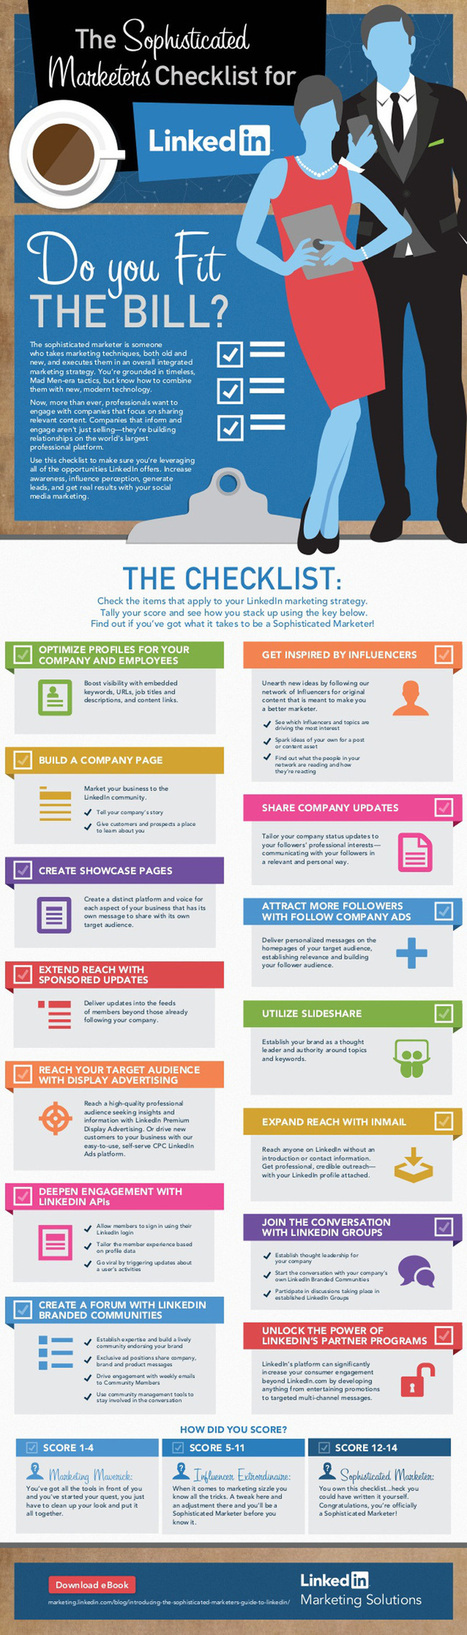 The Sophisticated Marketer's Guide to LinkedIn, an infographic | digital marketing strategy | Scoop.it